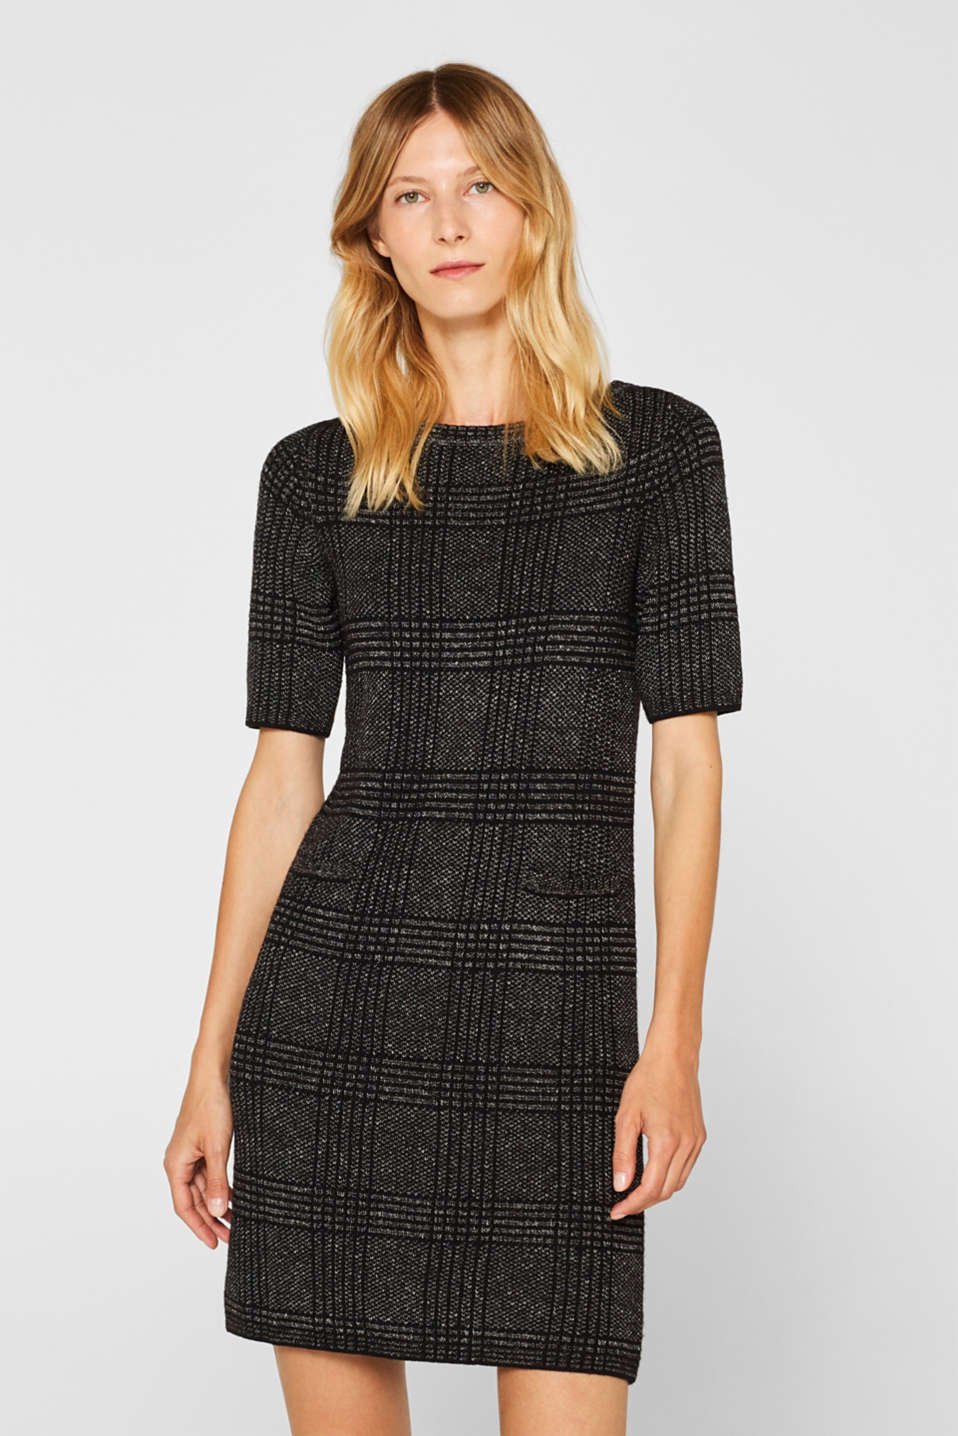 Esprit - Melange sheath knit dress